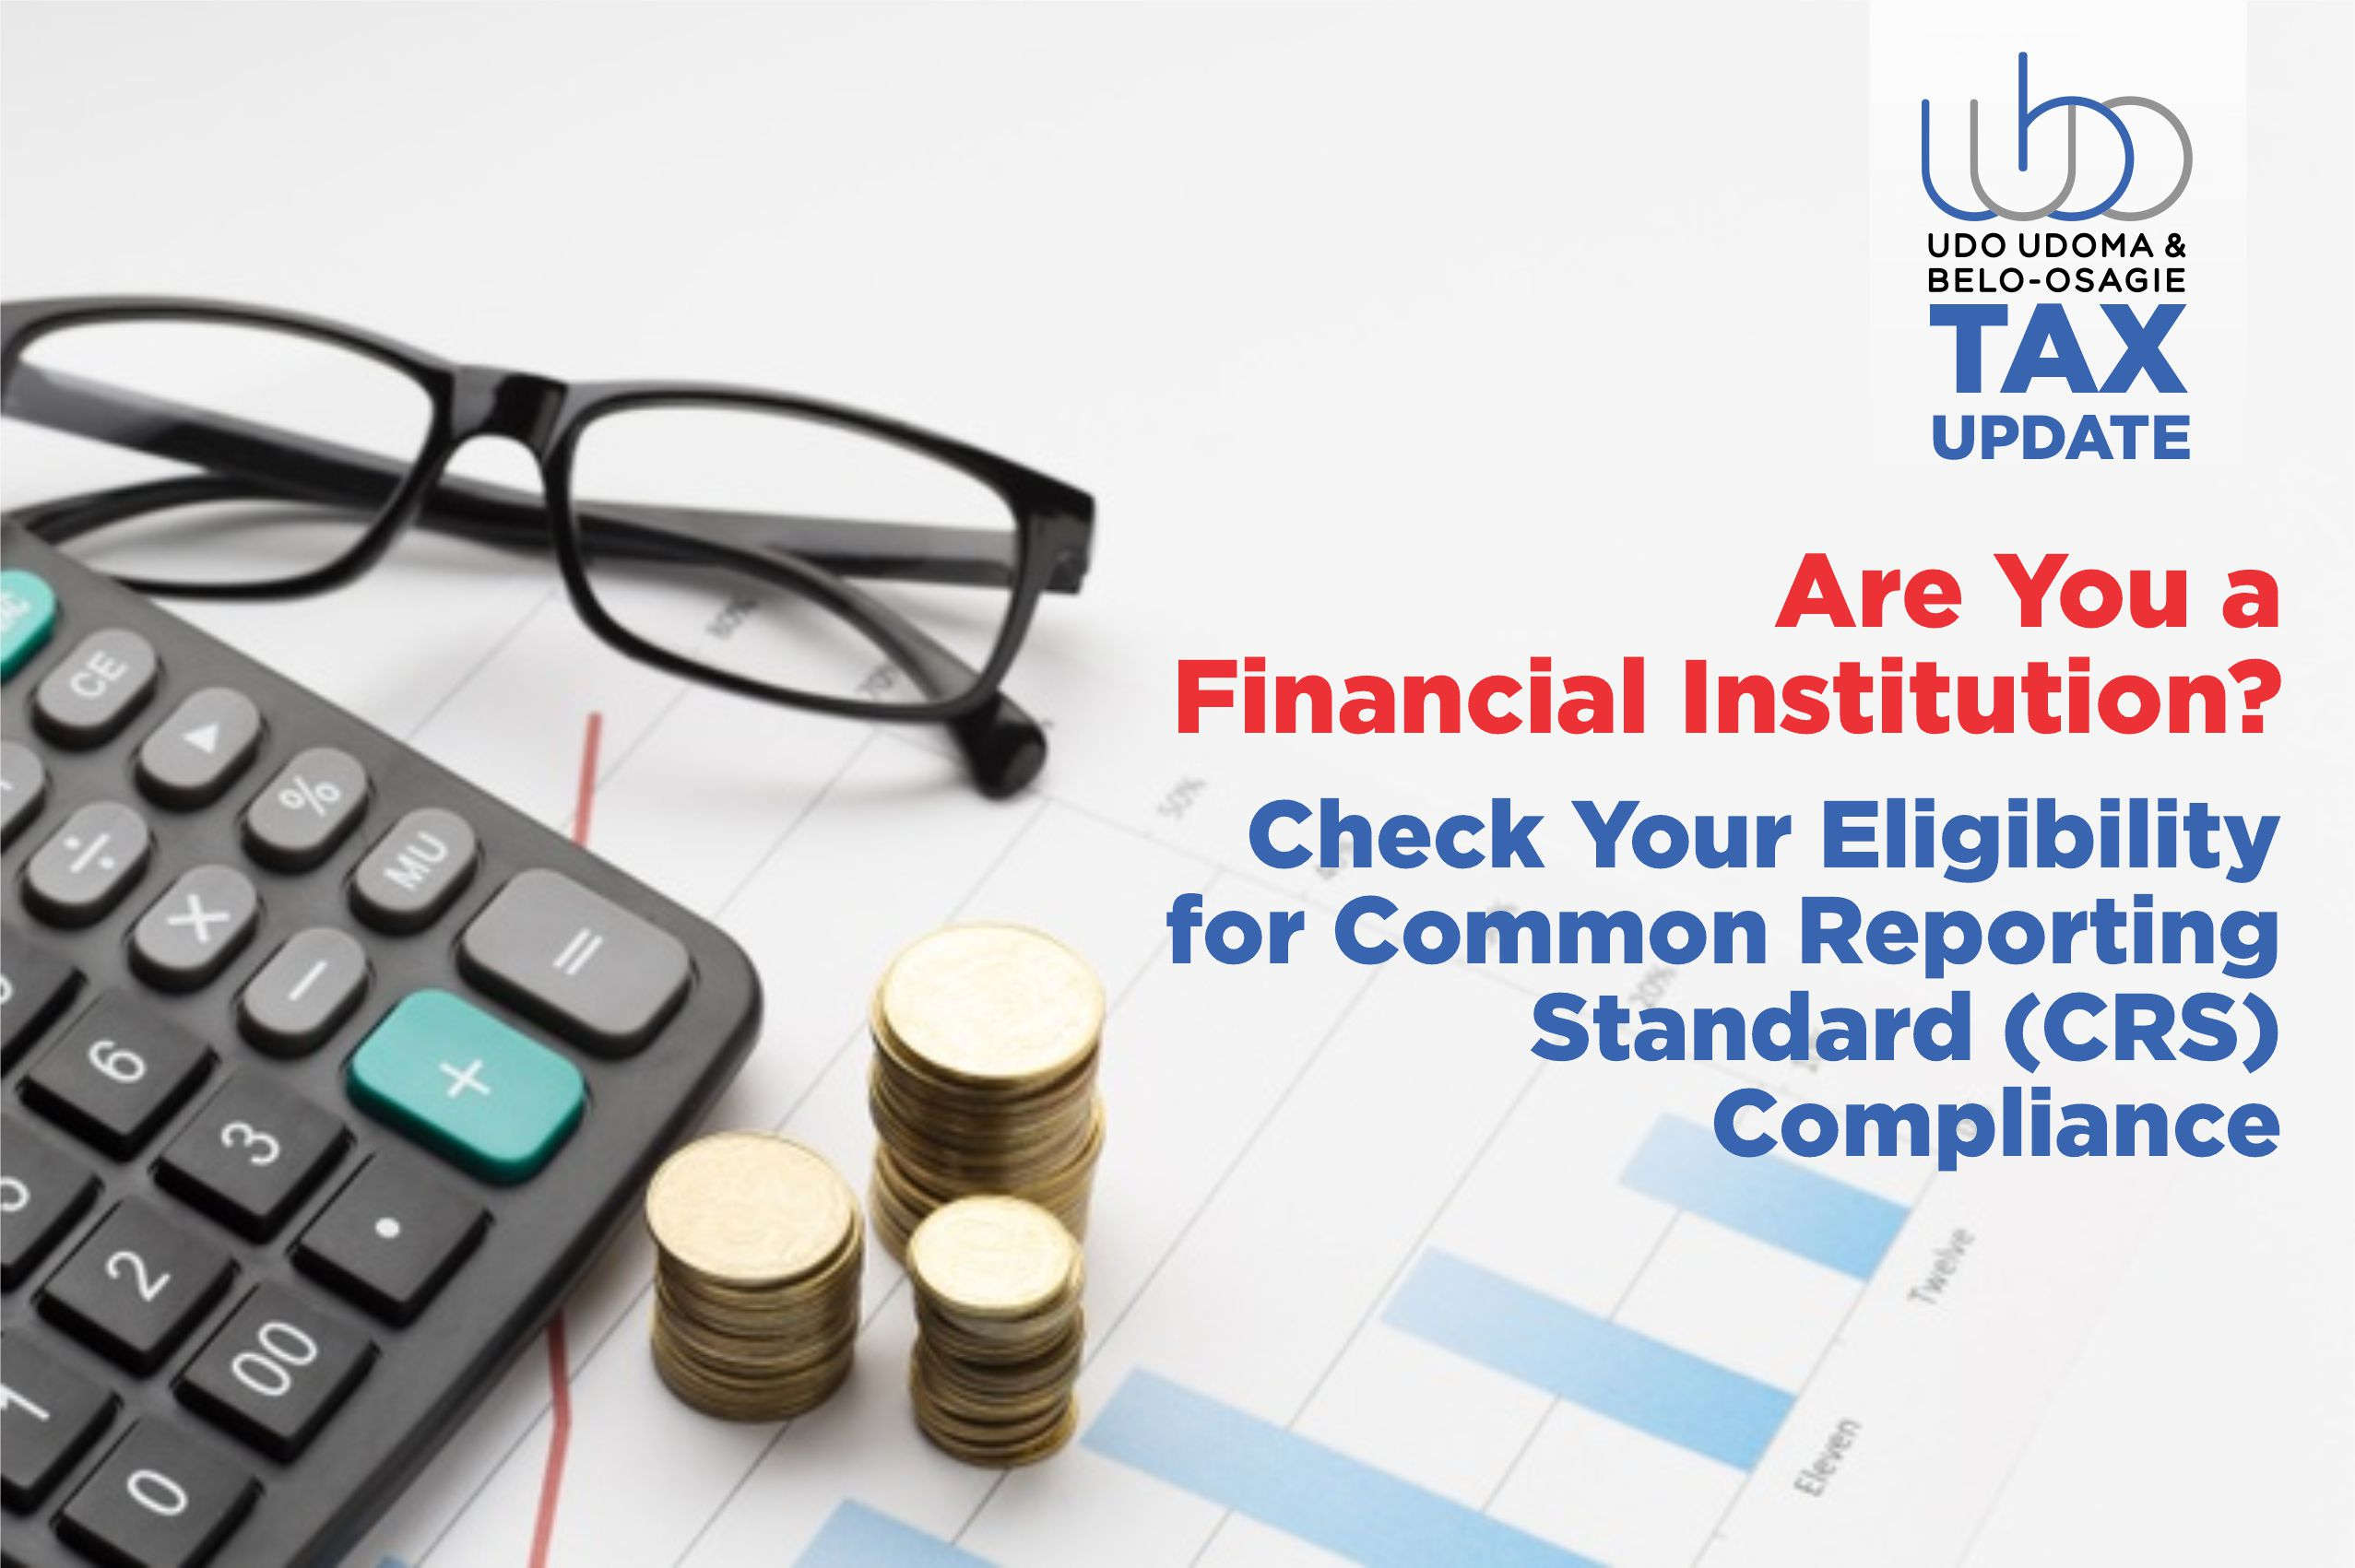 Are You a Financial Institution? Check Your Eligibility for Common Reporting Standard (CRS) Compliance